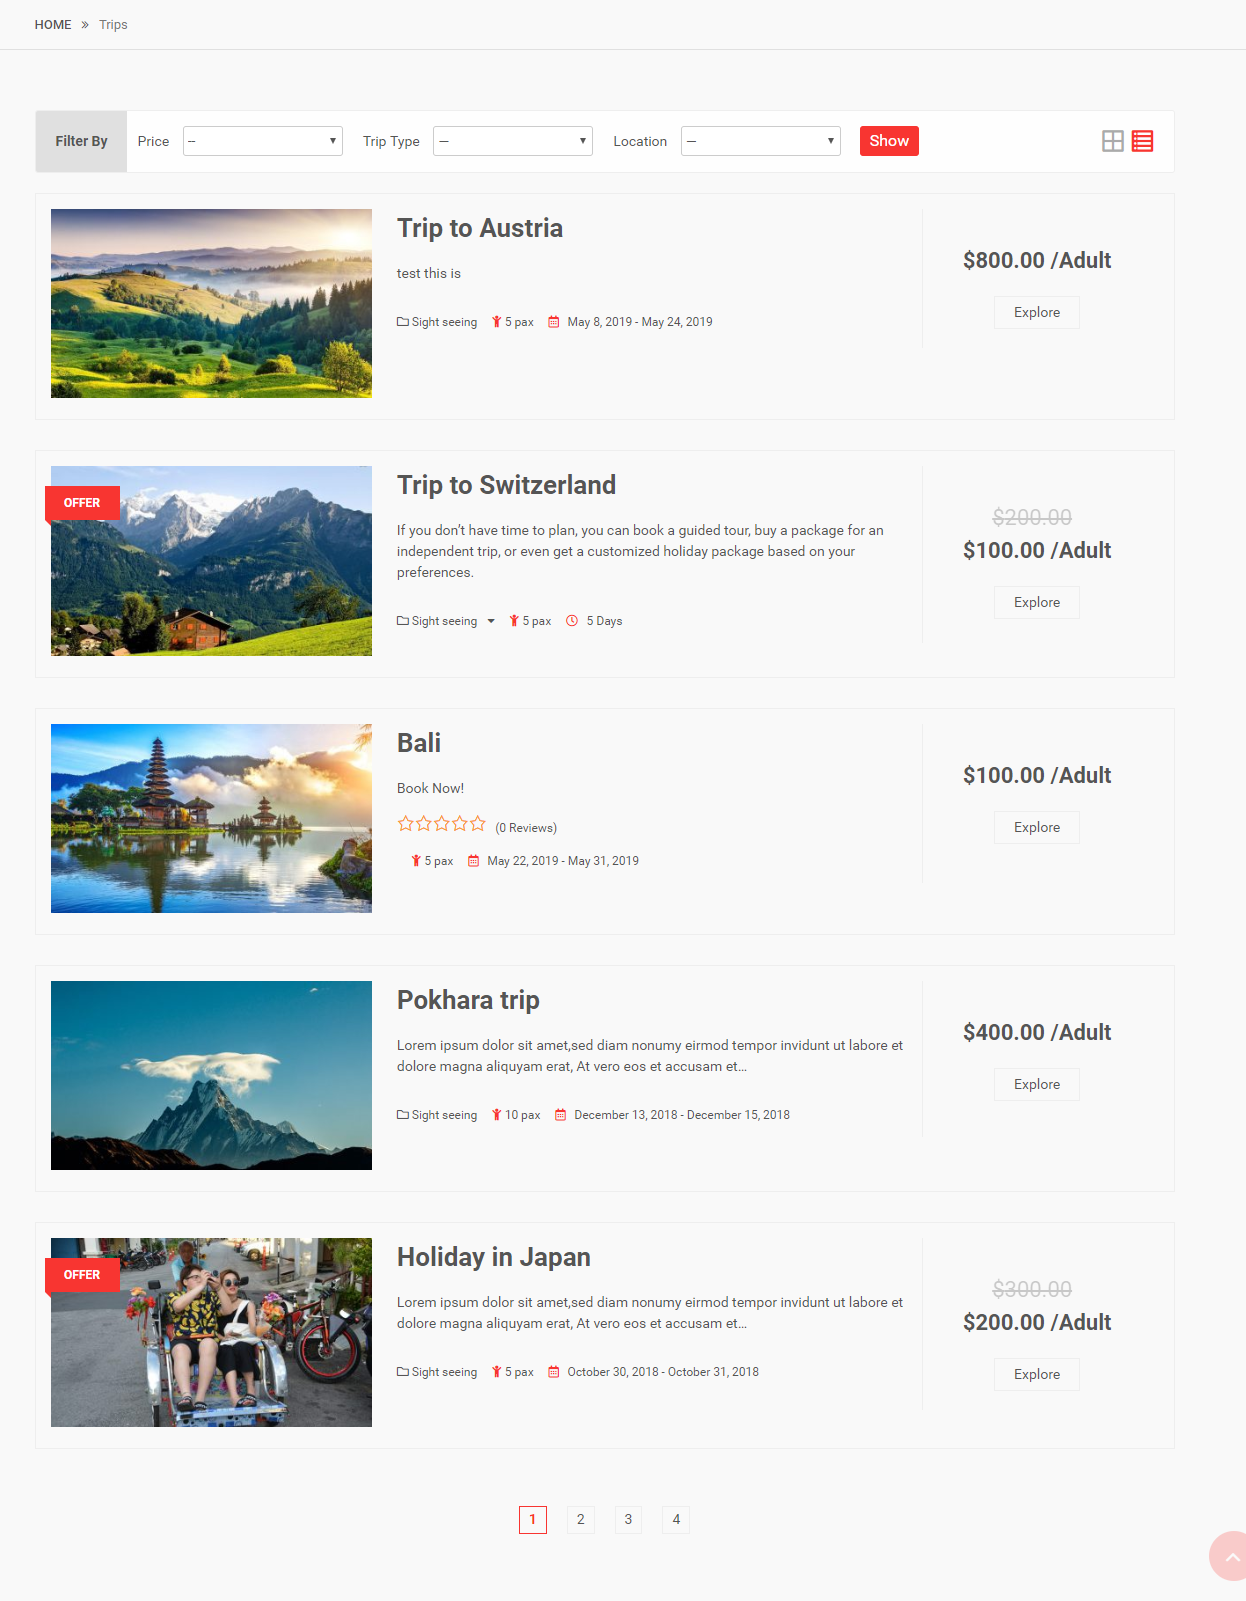 Frontend: Itinerary listing